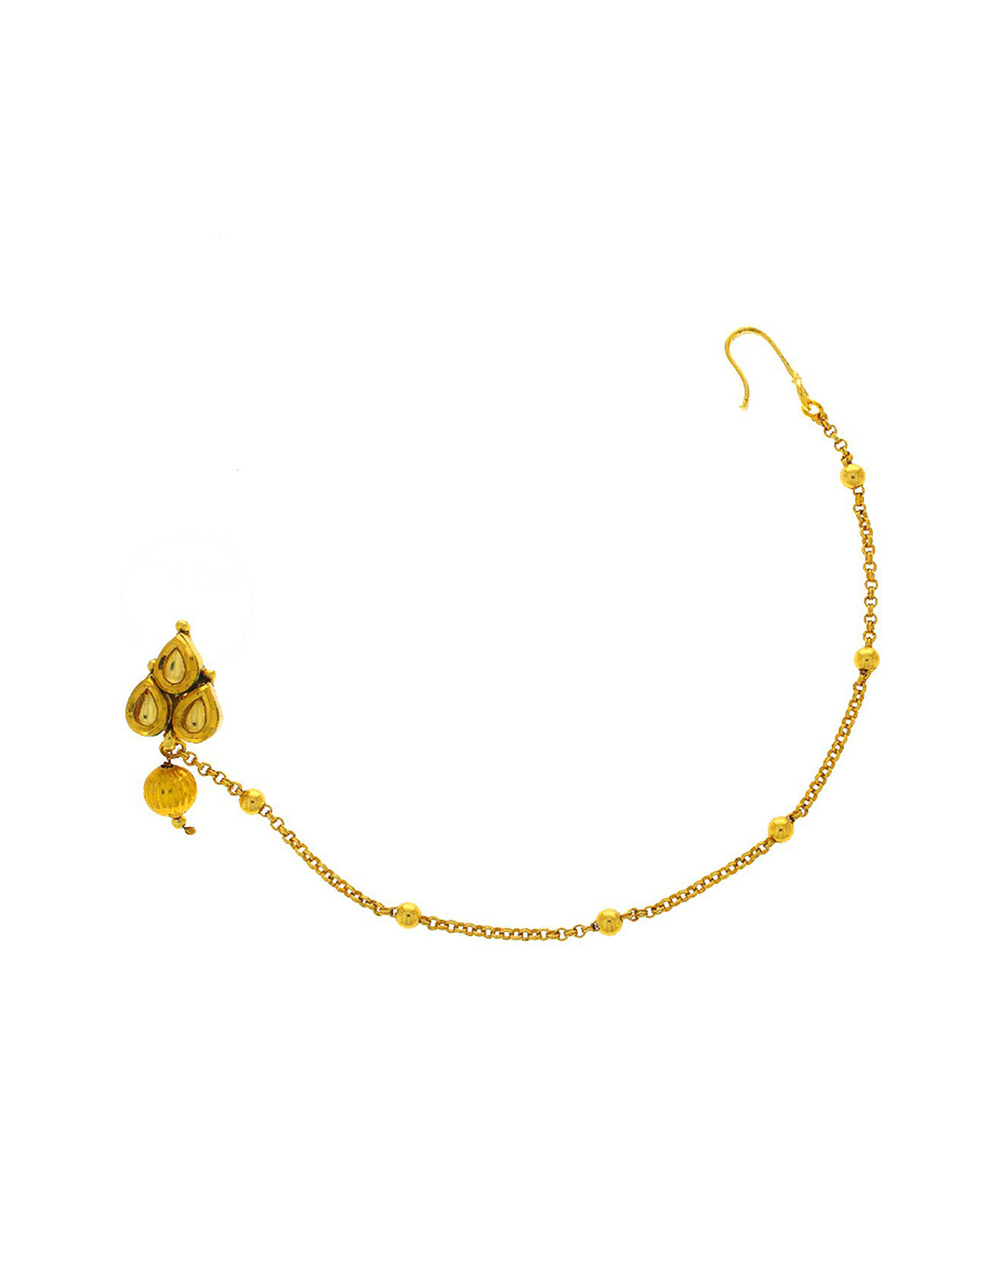 Gold Finish Nose Ring Studded With Kundan Chain Nose Ring